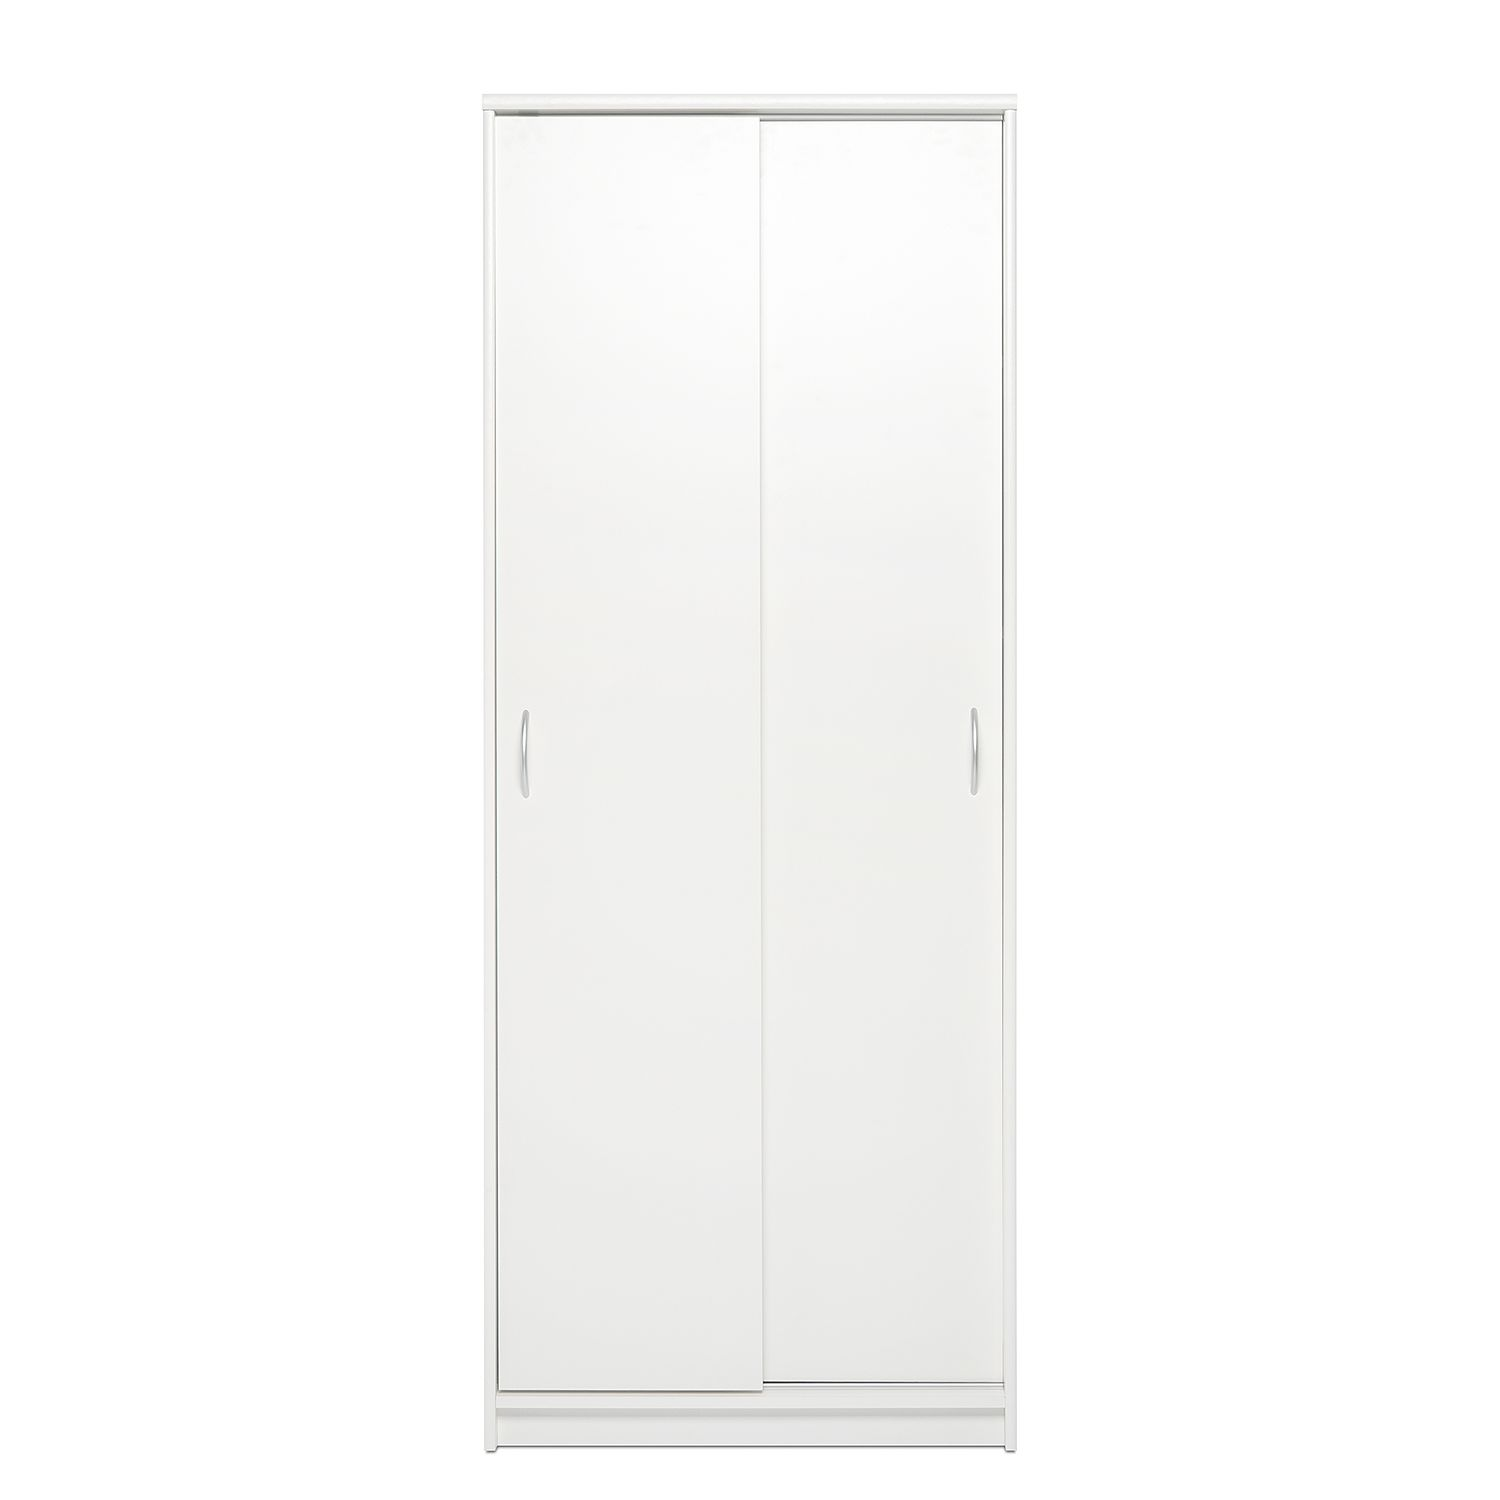 Armoire à dossiers Oradea I - Blanc - 74 cm, mooved